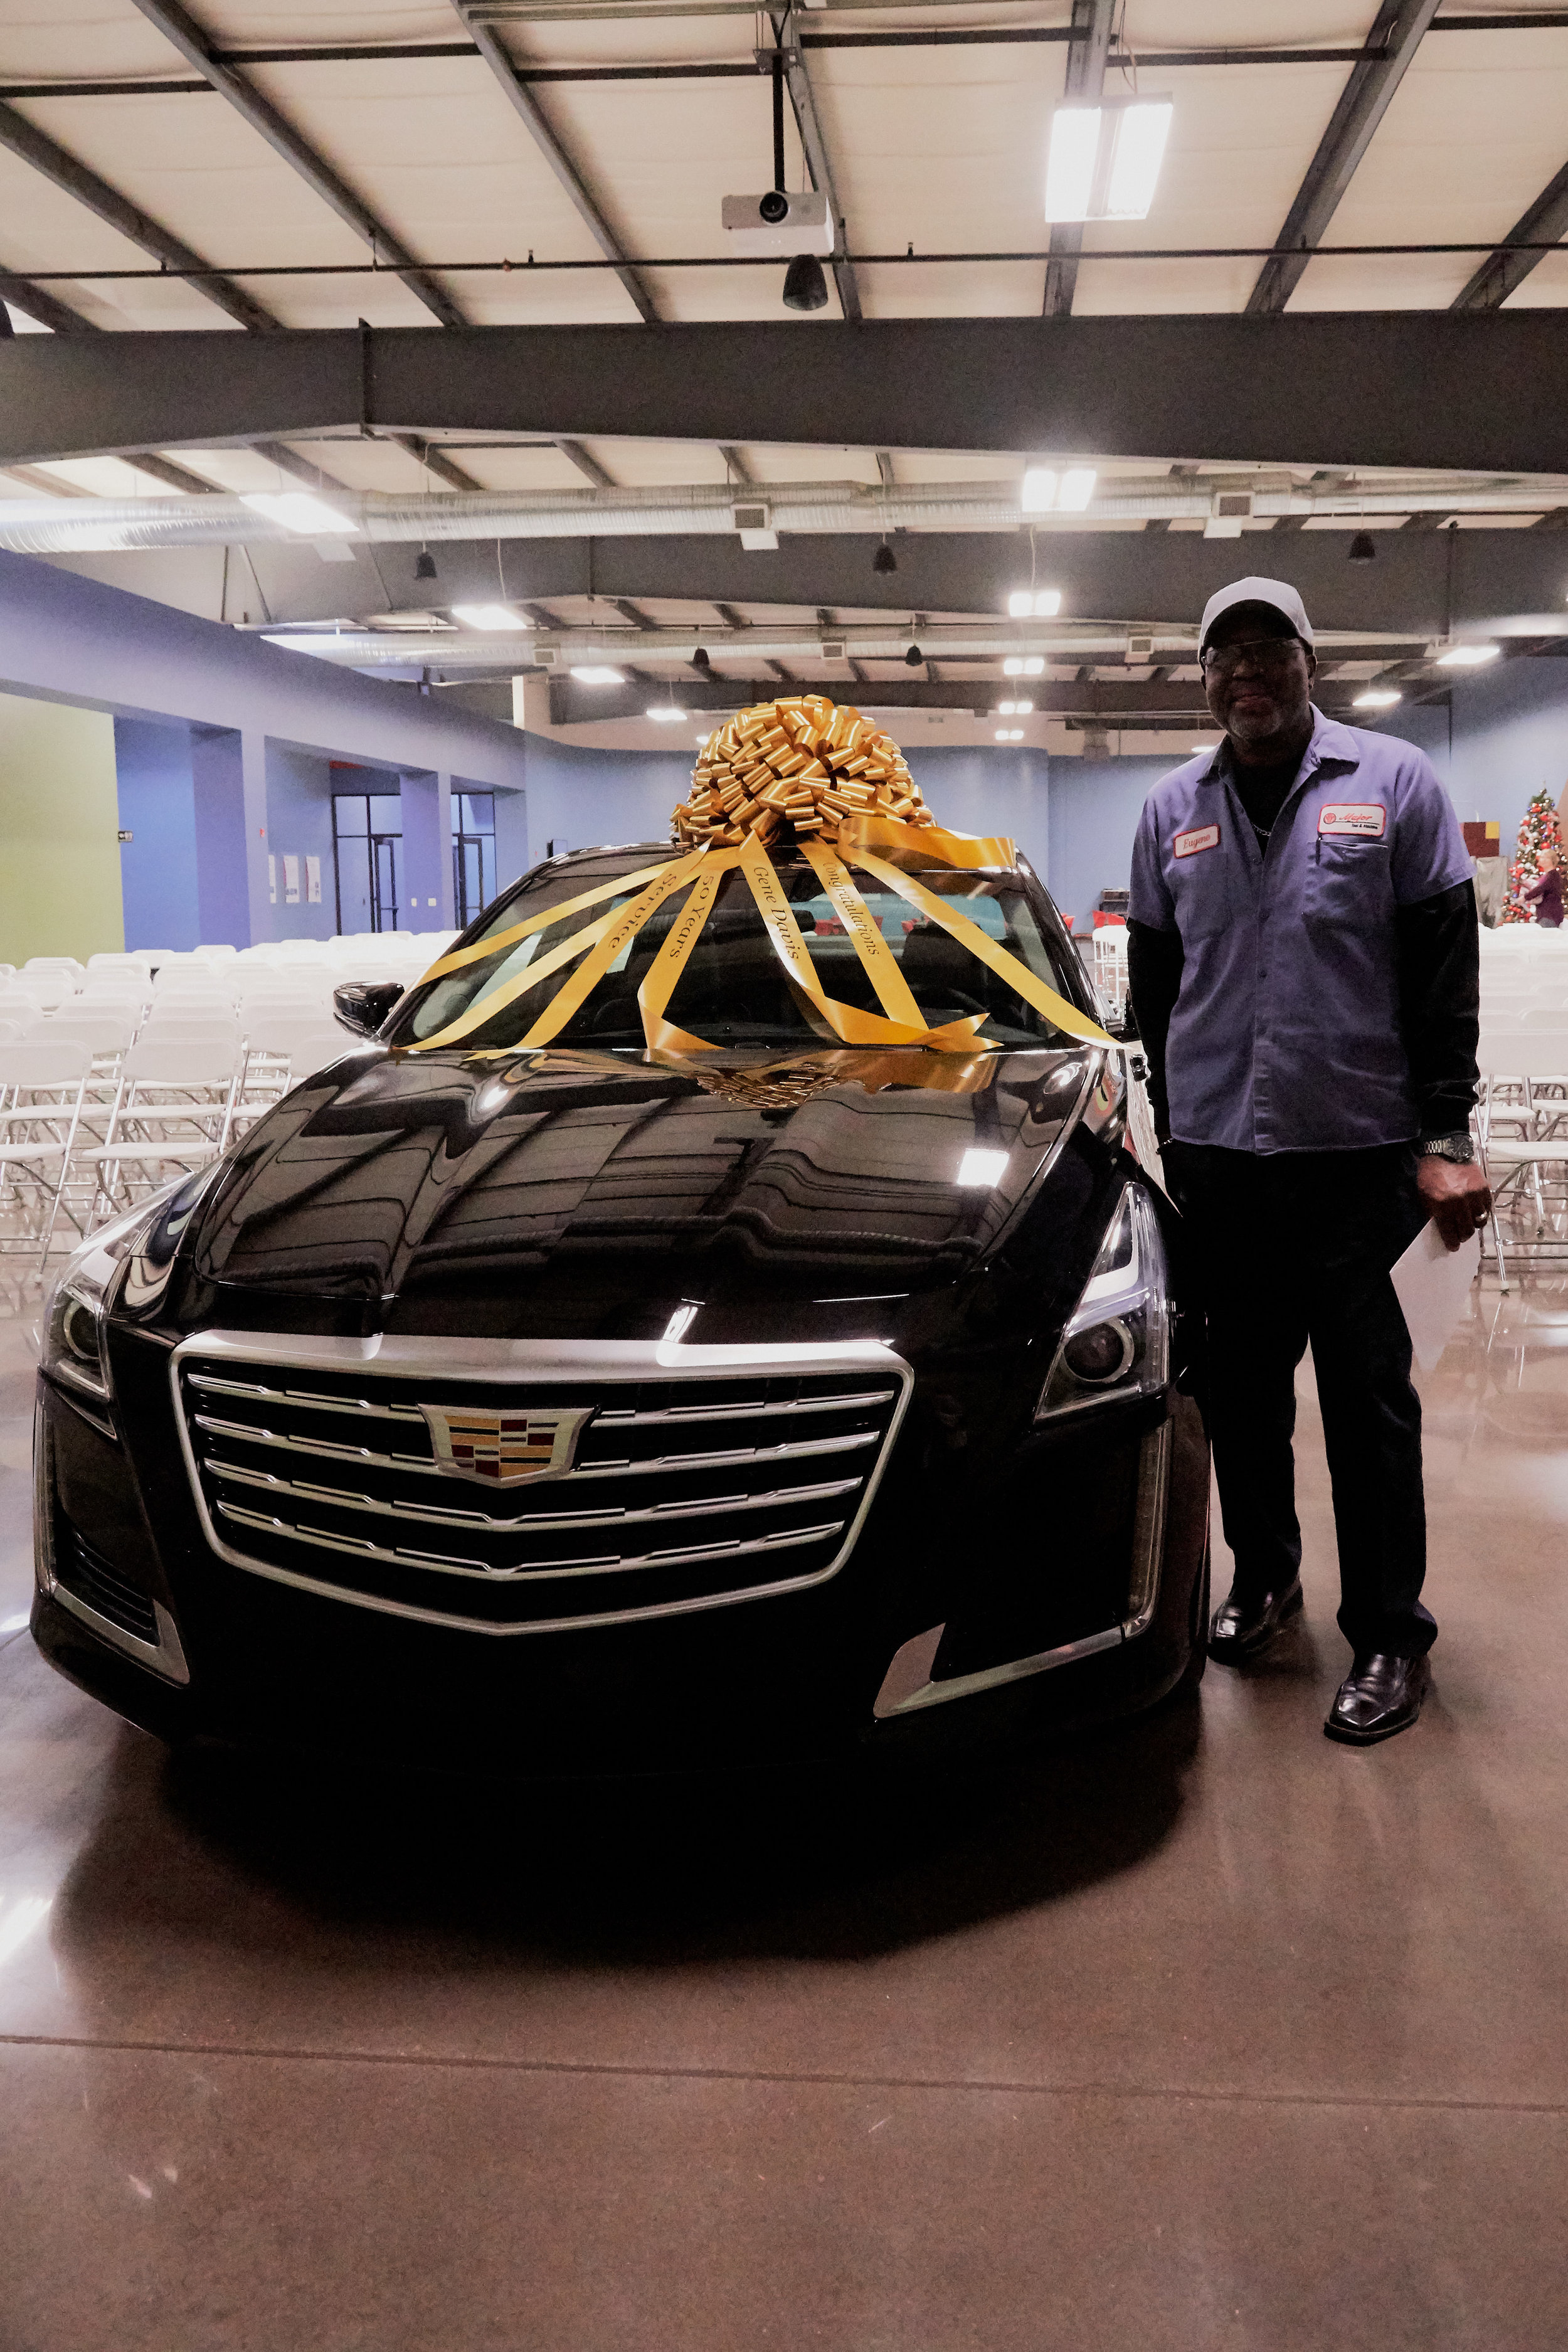 Receiving a Cadillac for 50 years of service